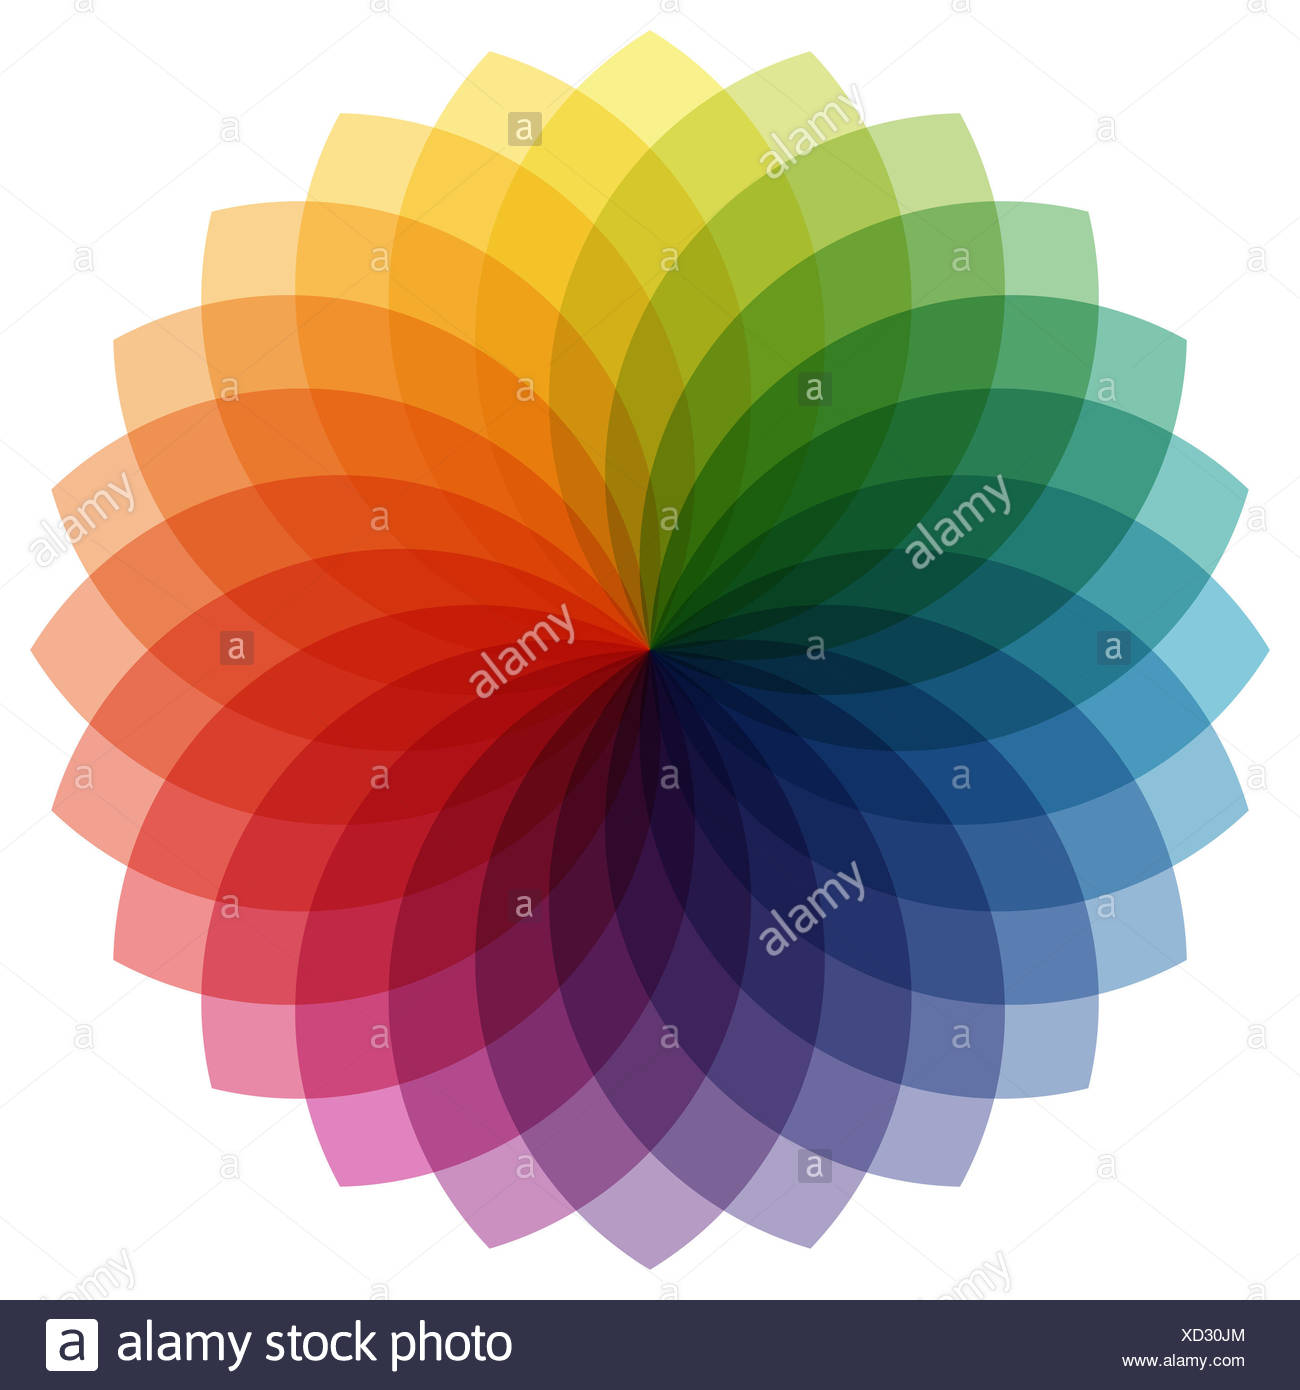 illustration of printing color wheel with different colors in gradations - Stock Image